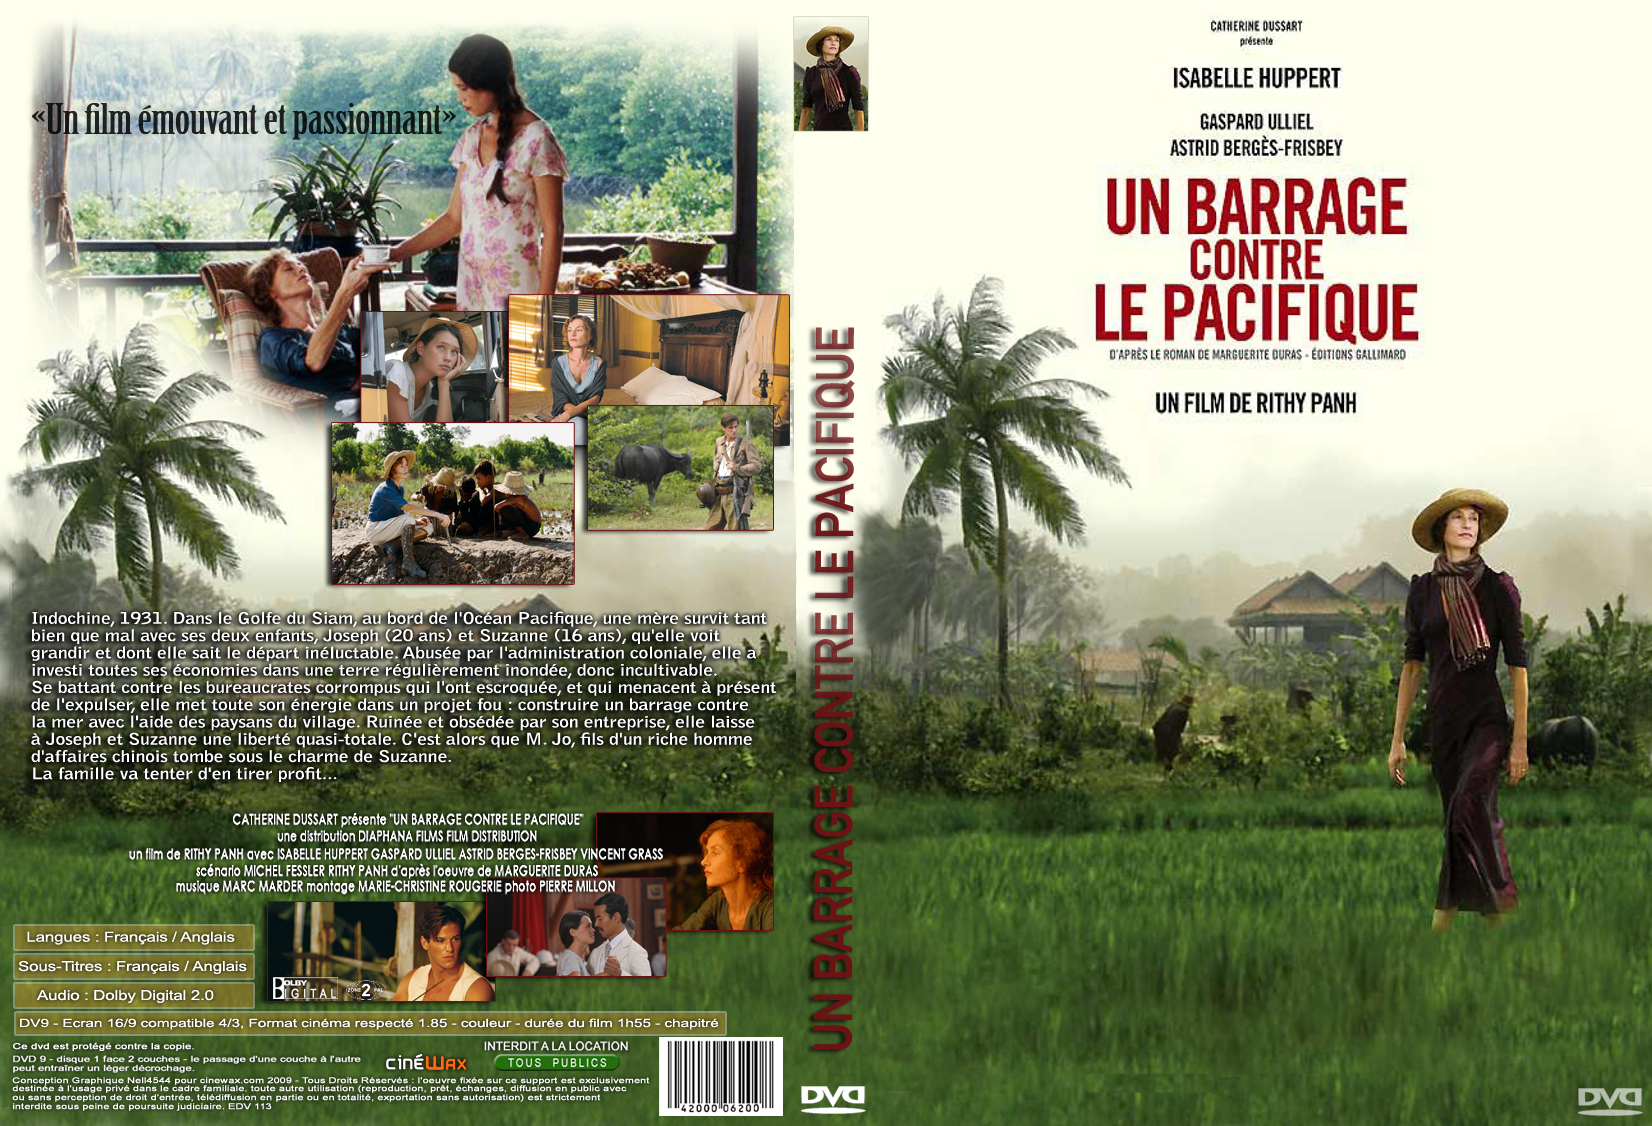 http://www.fharaoncovers.com/covers/Un_barrage_contre_le_pacifique_custom_nell4544.jpg